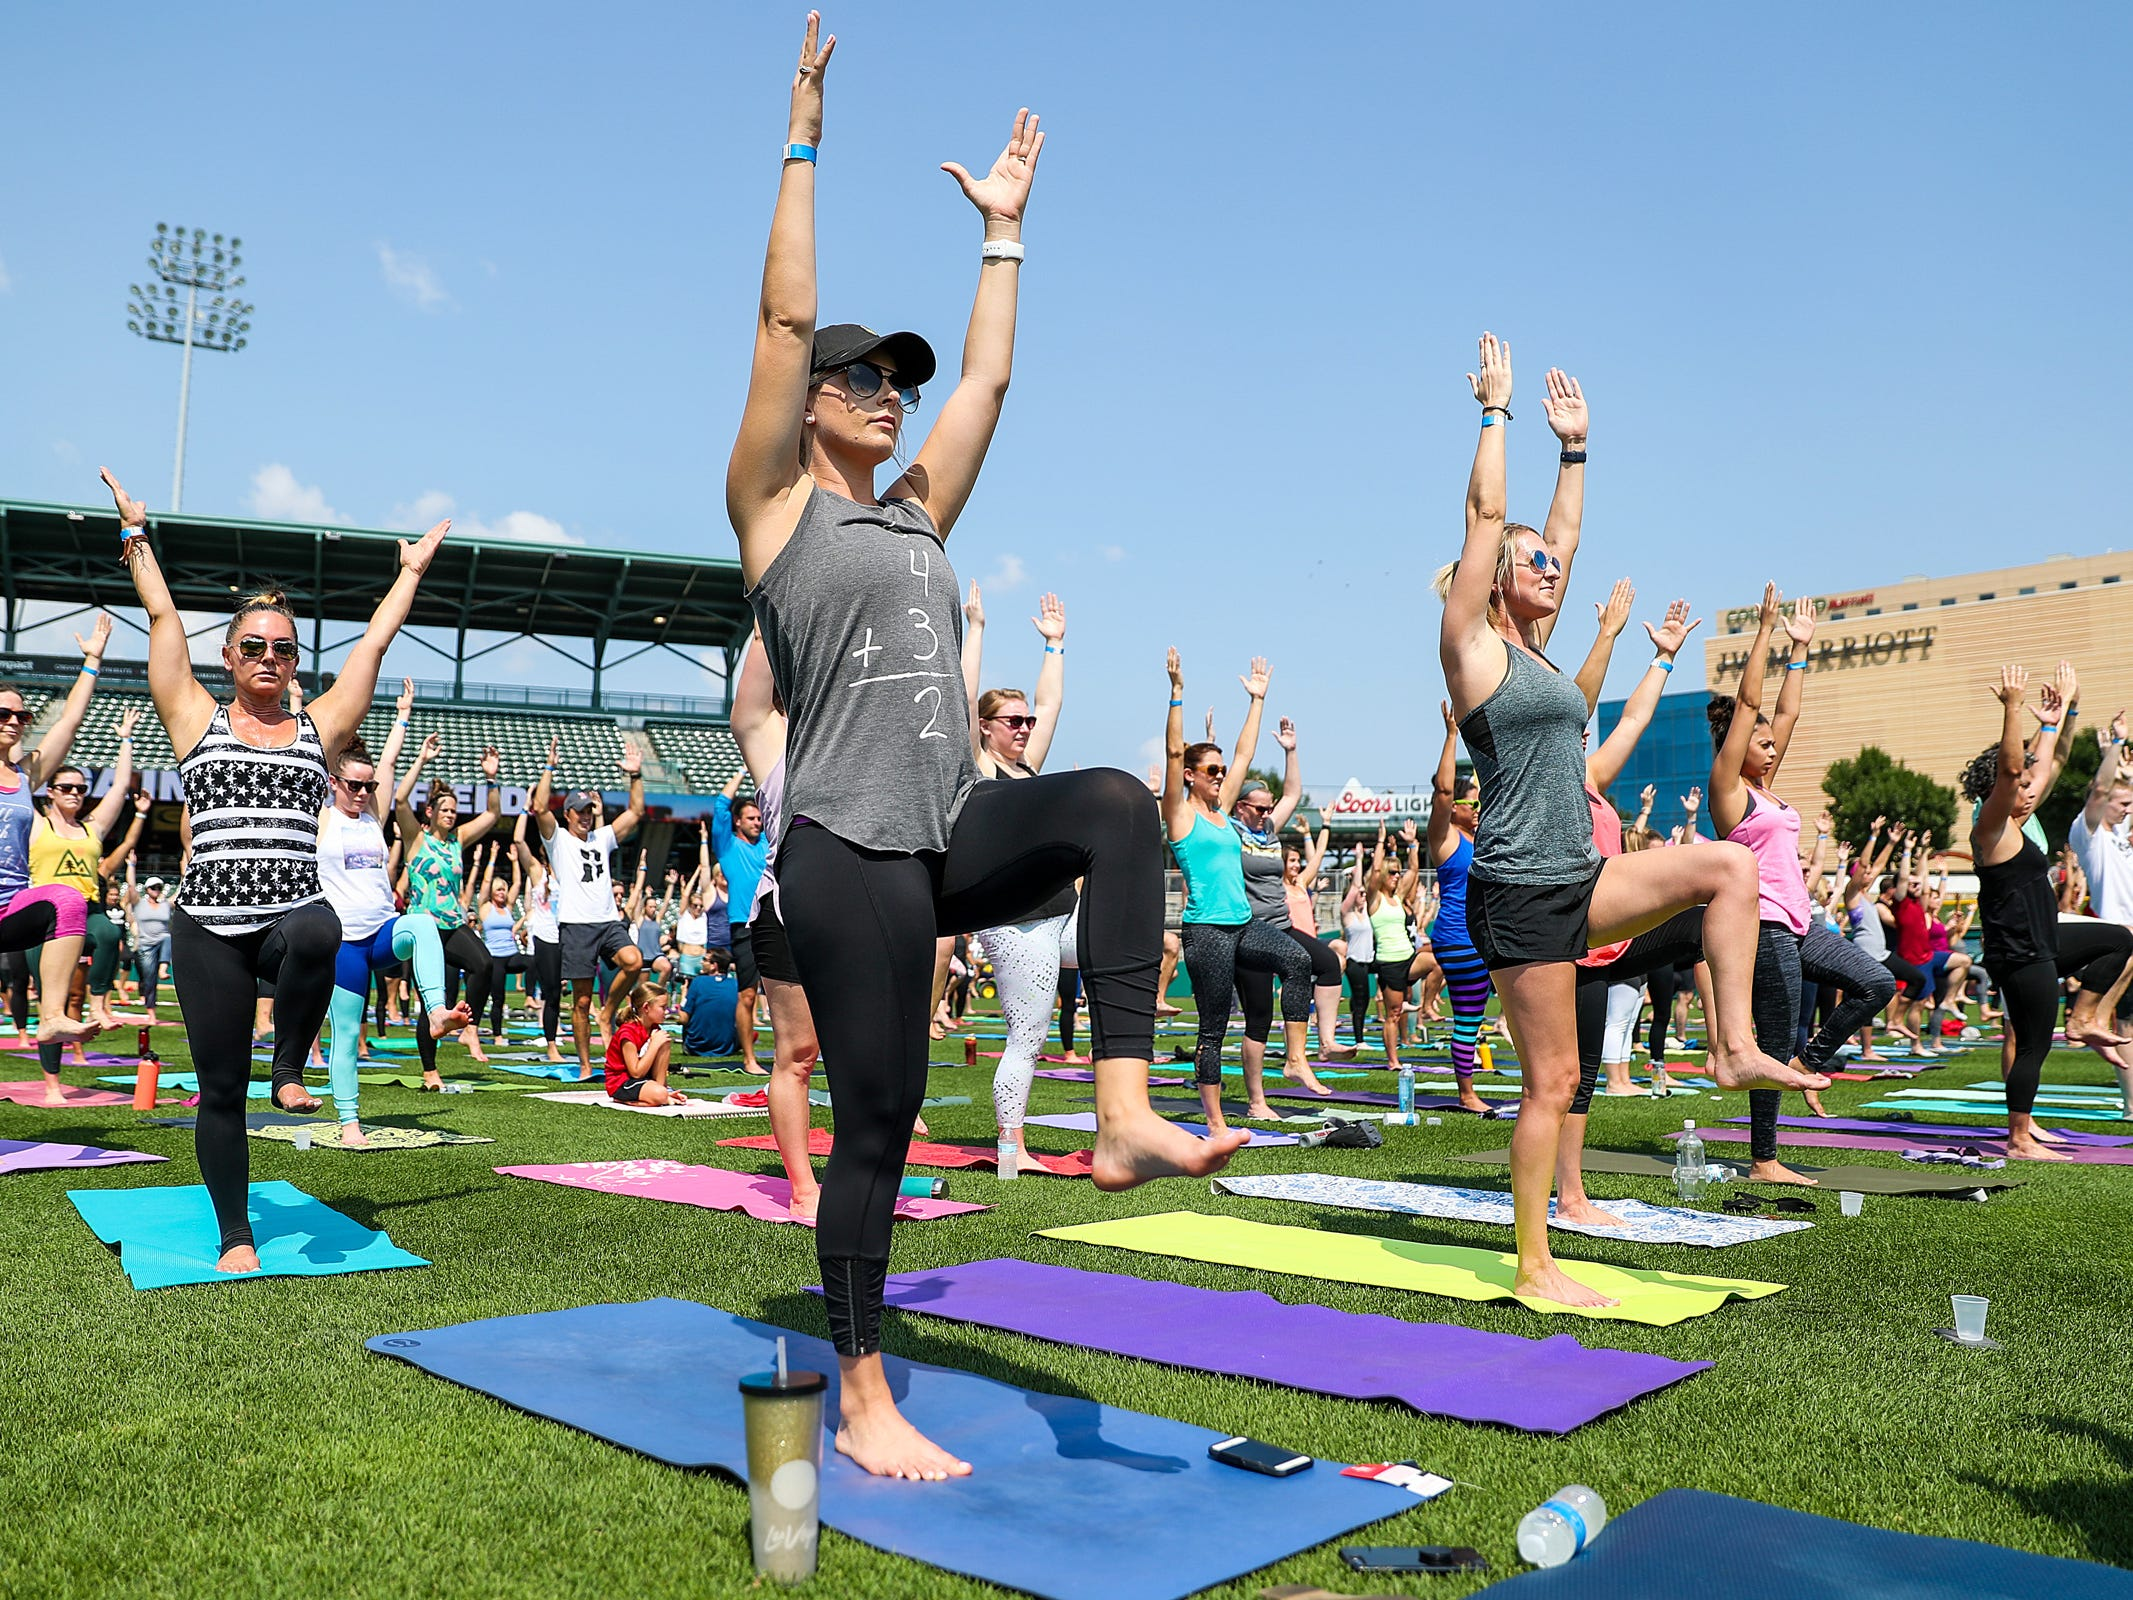 Yogis practice vinyasa flow during Yoga in the Outfield at Victory Field in Indianapolis, Sunday, Aug. 12, 2018.